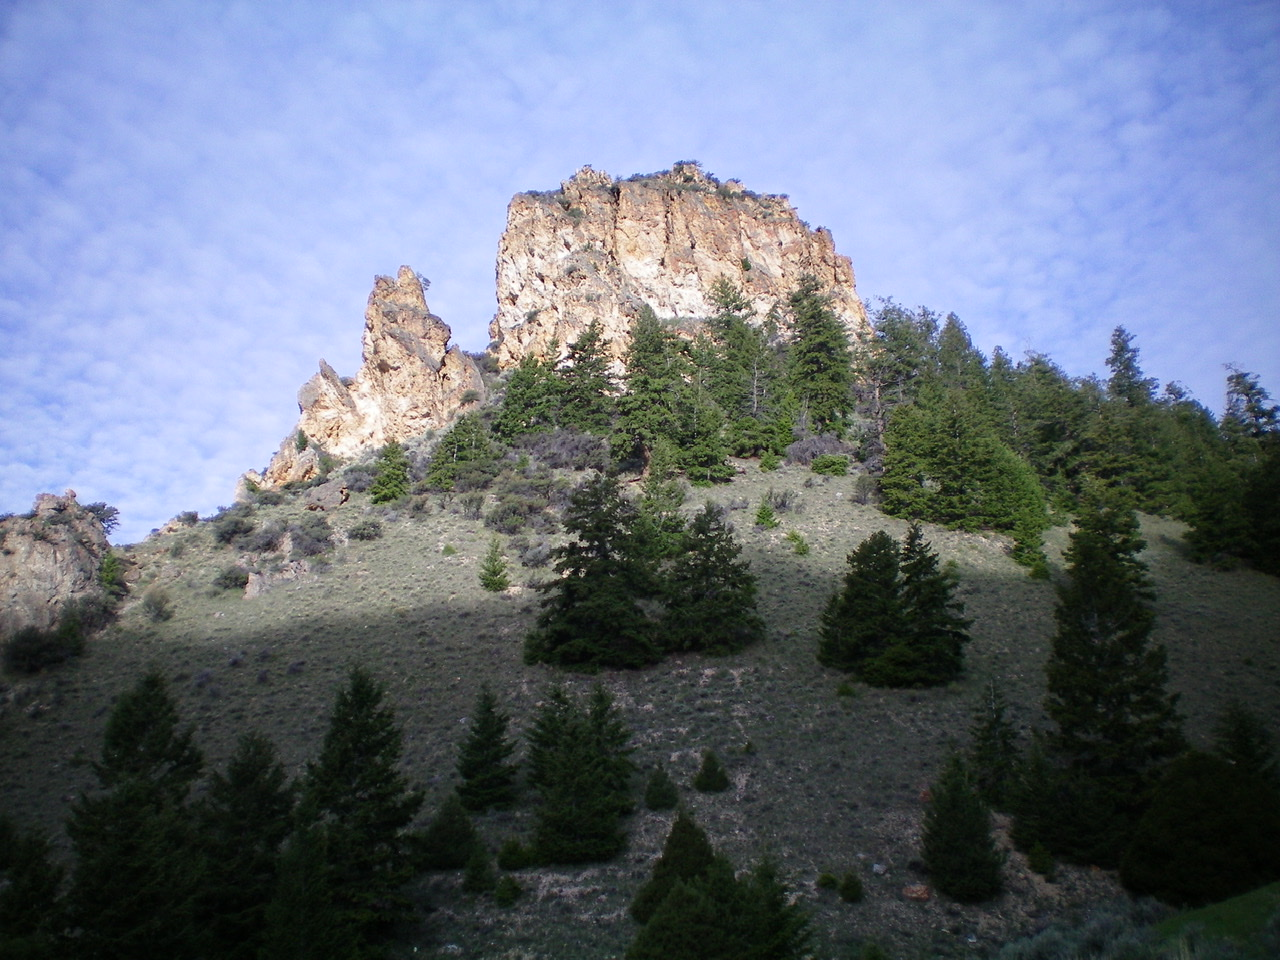 Peak 7940 viewed from the east. Livingston Douglas Photo